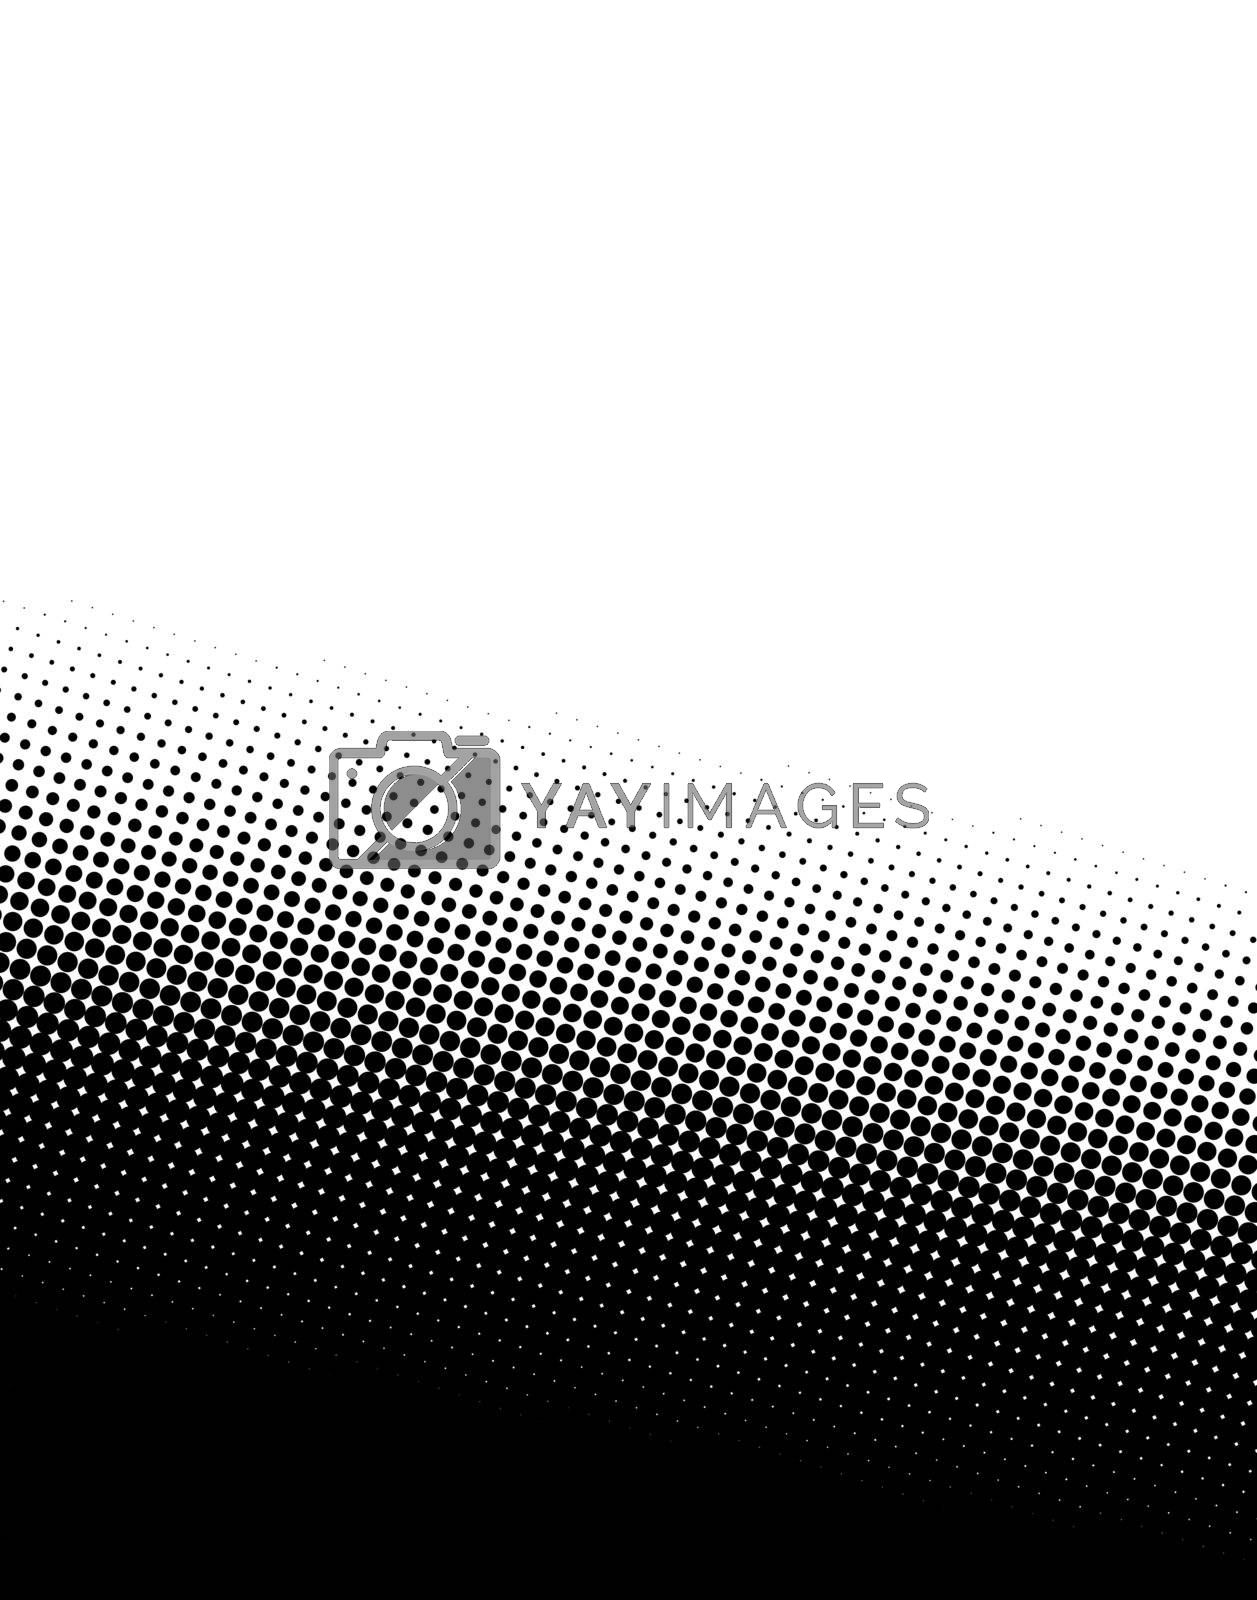 A black and white halftone background - plenty of copy space.